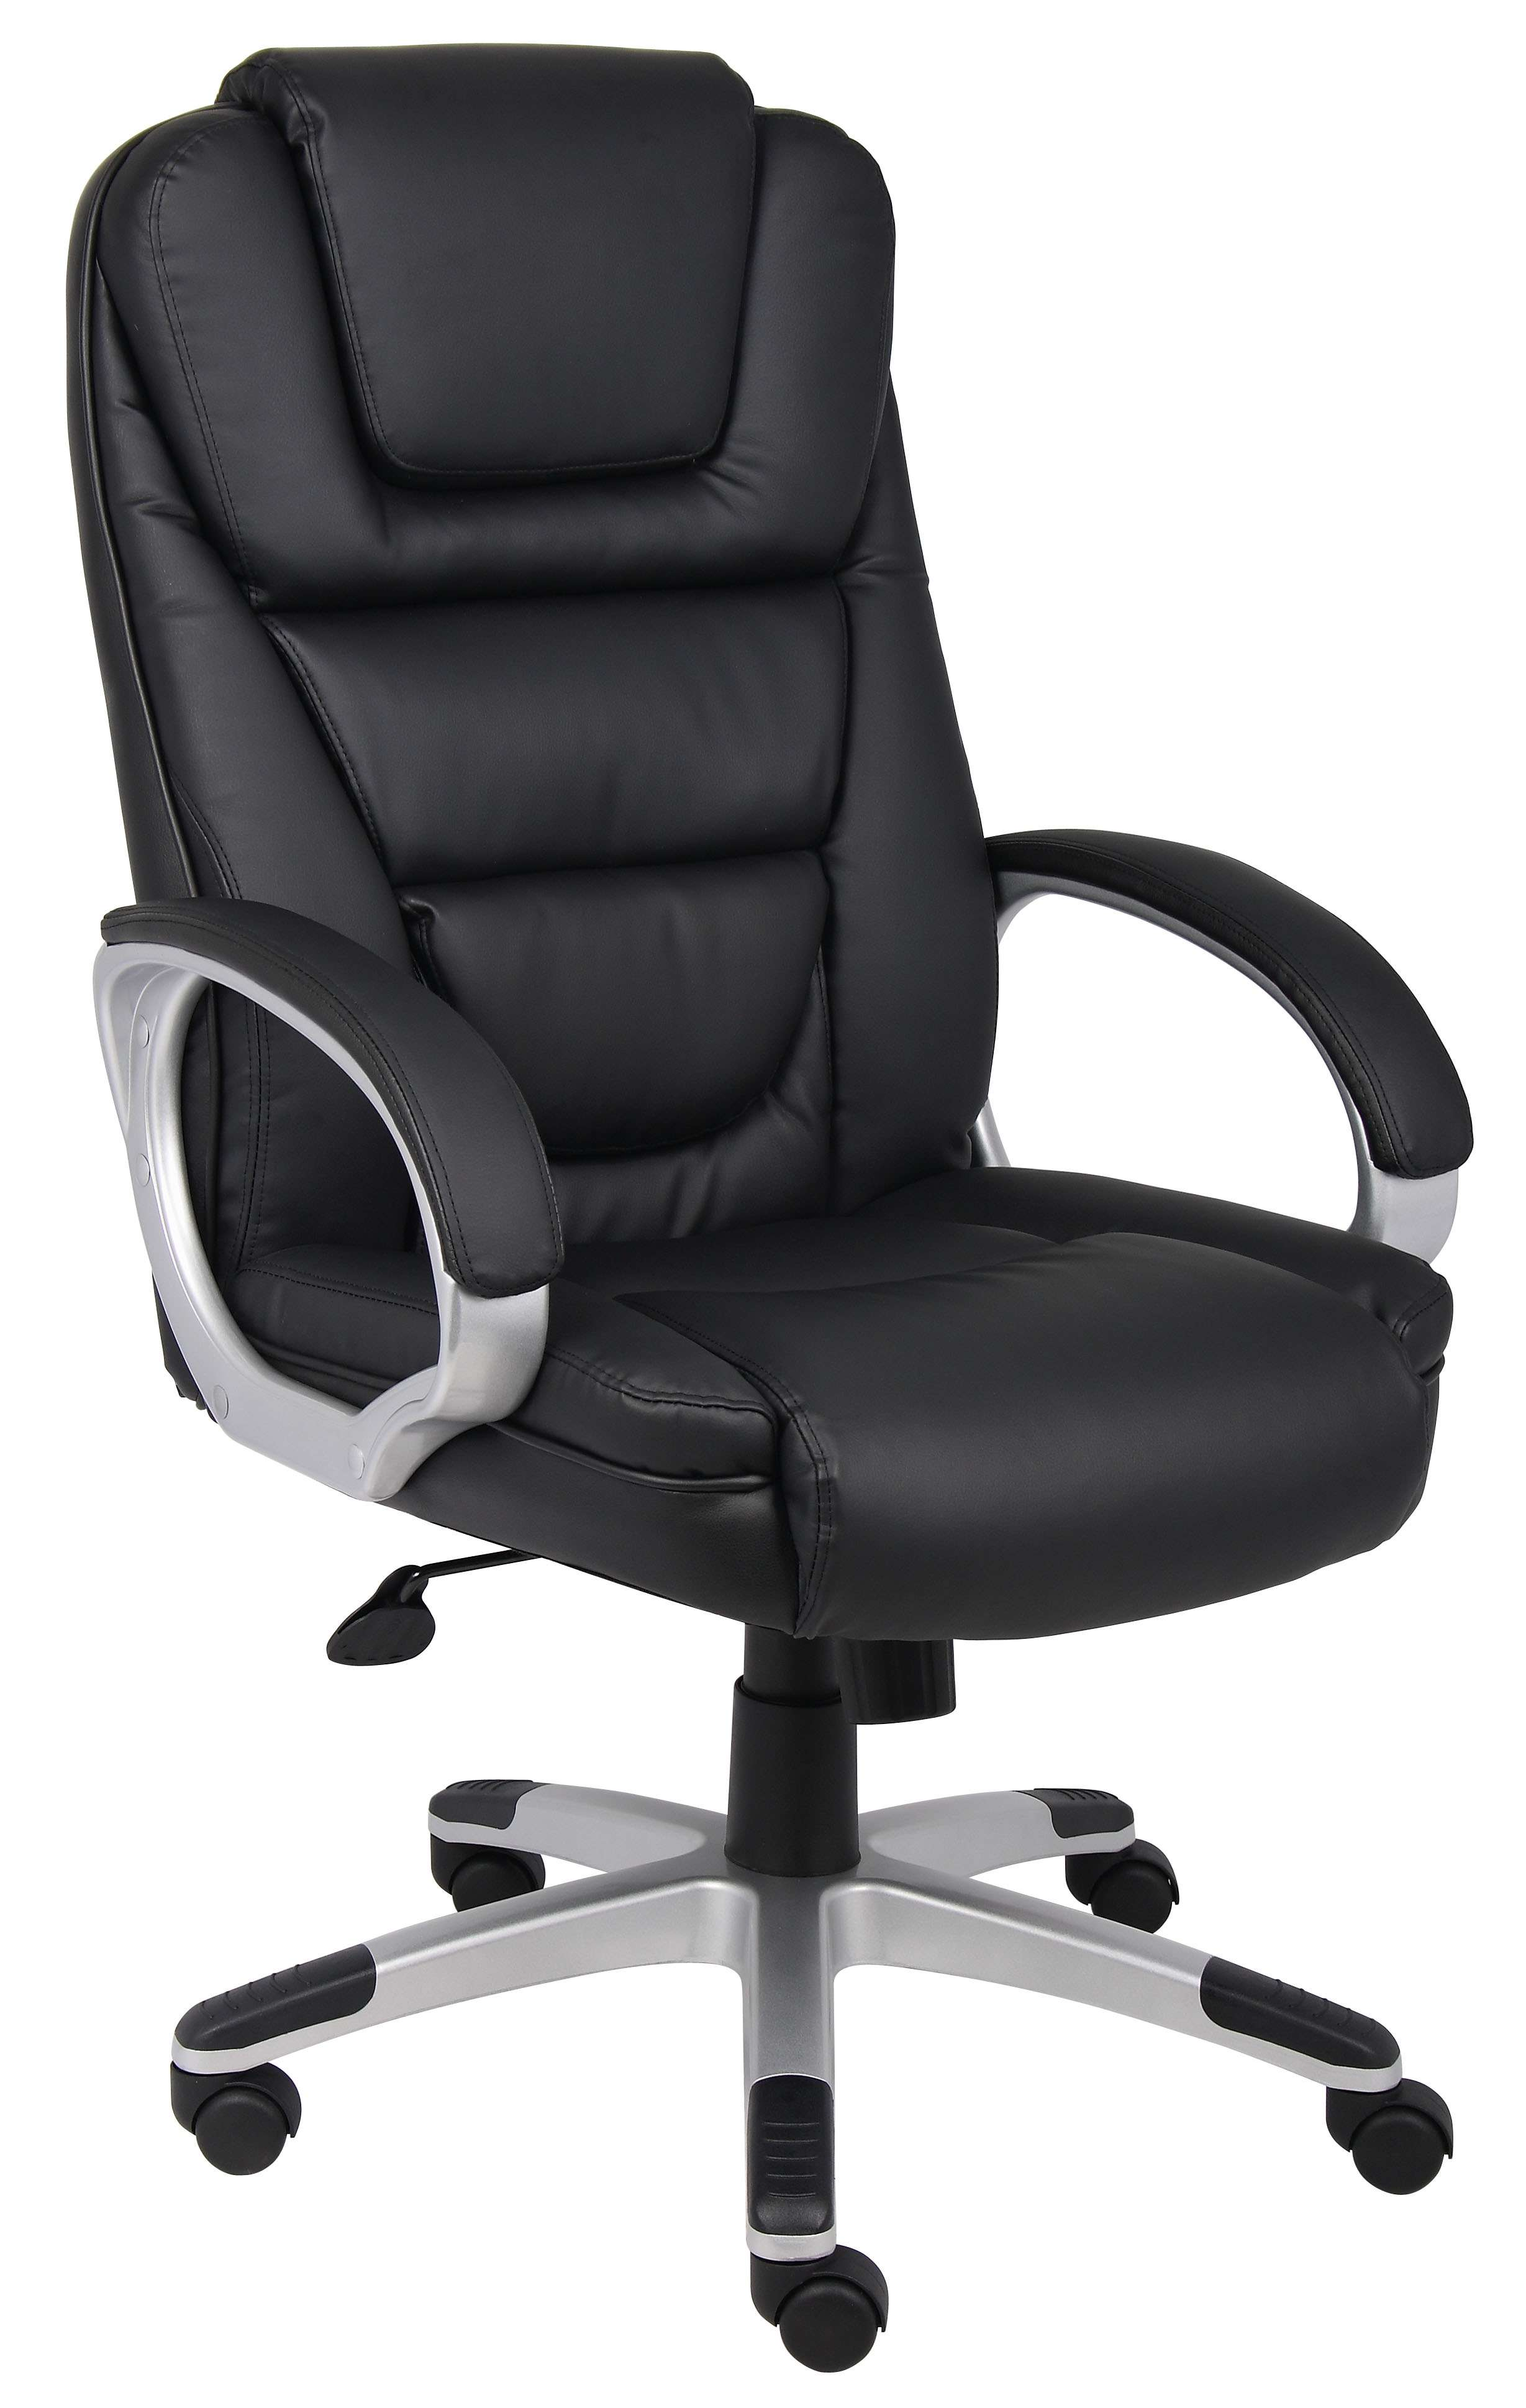 NTR Black LeatherPlus Executive Chair in Silver Finish